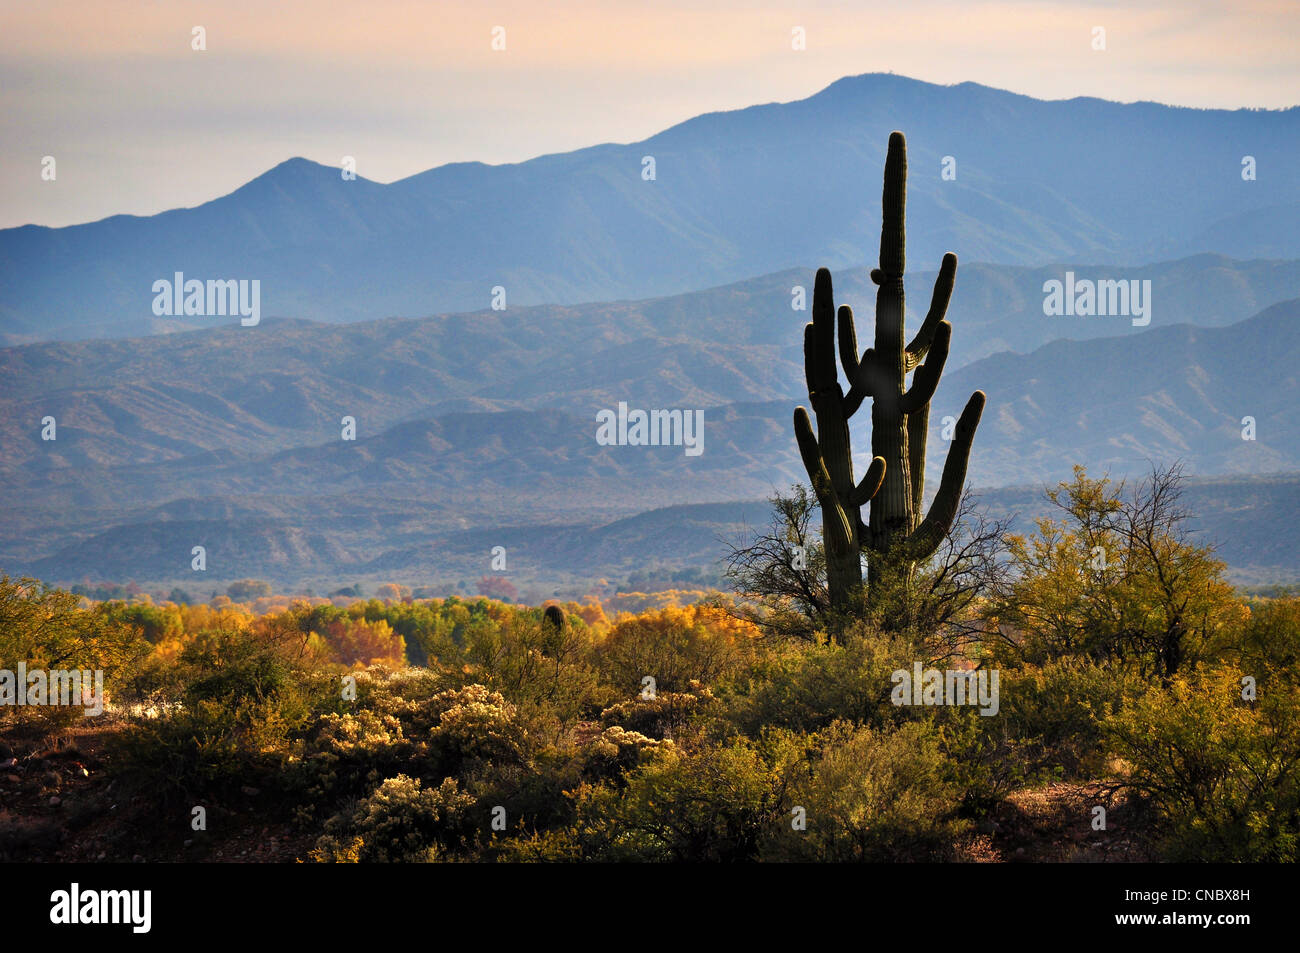 Arizona Desert landscape with cactus in autumn - Stock Image